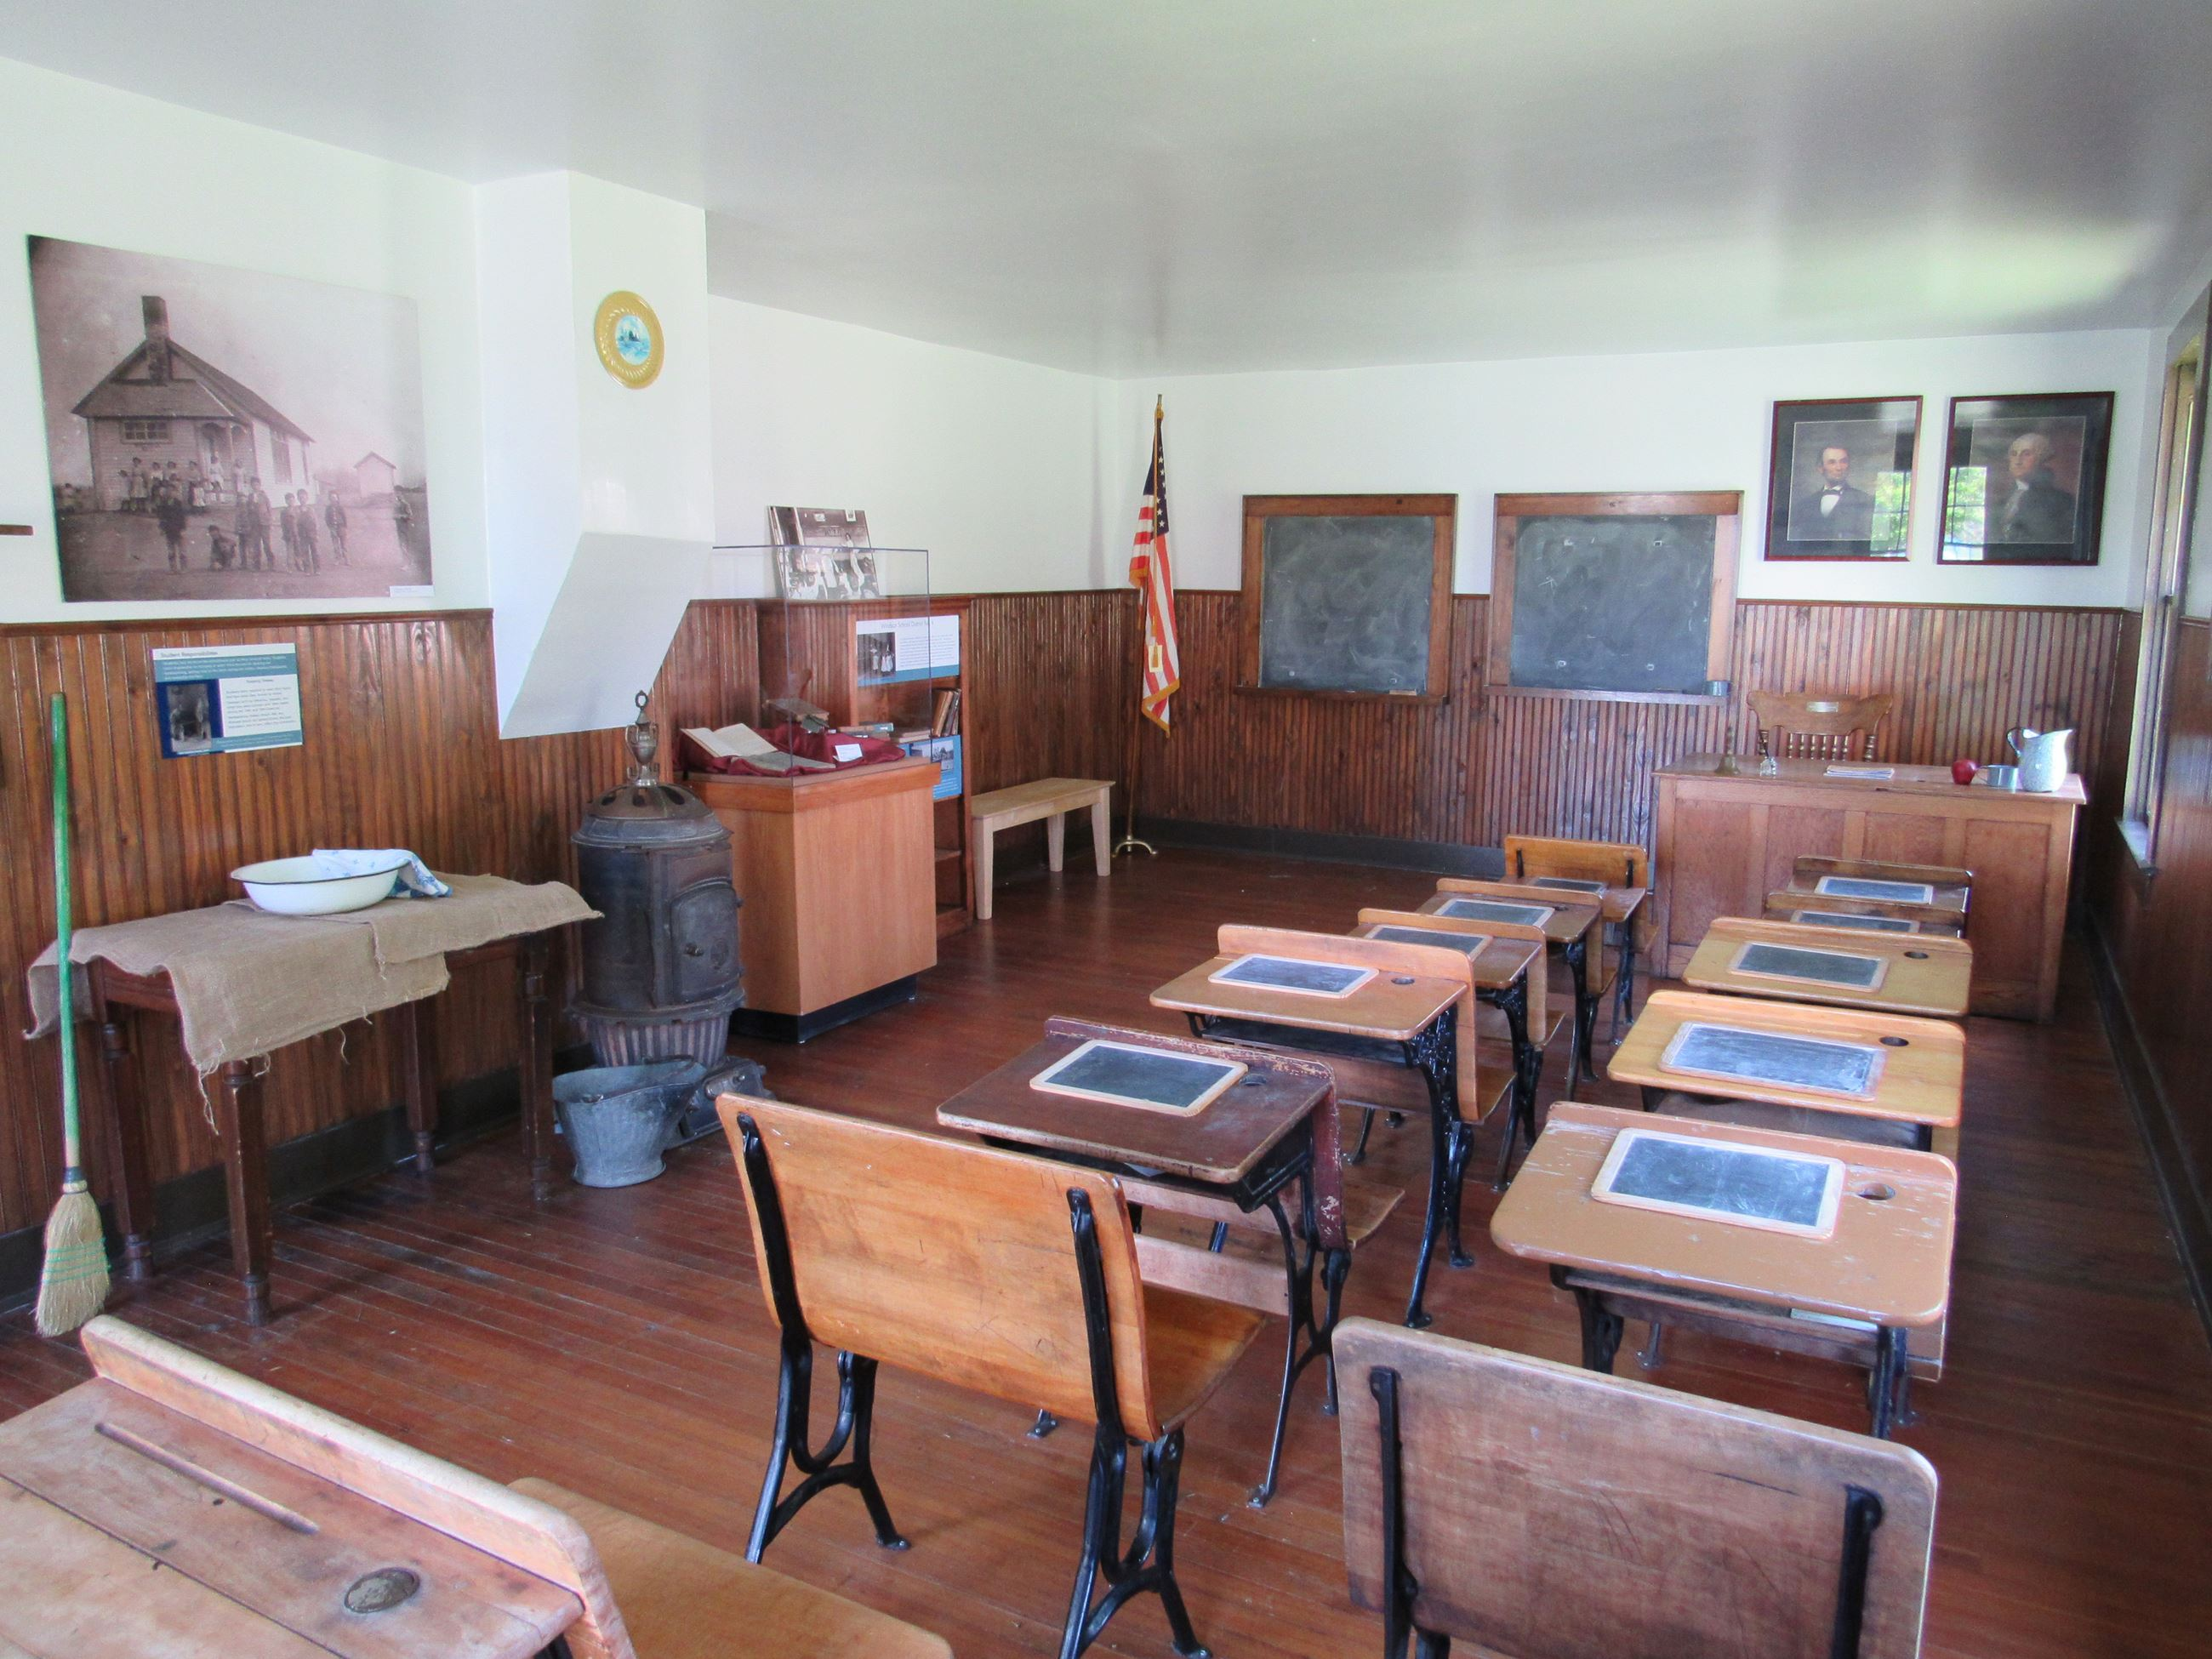 An old one-room schoolhouse with desks